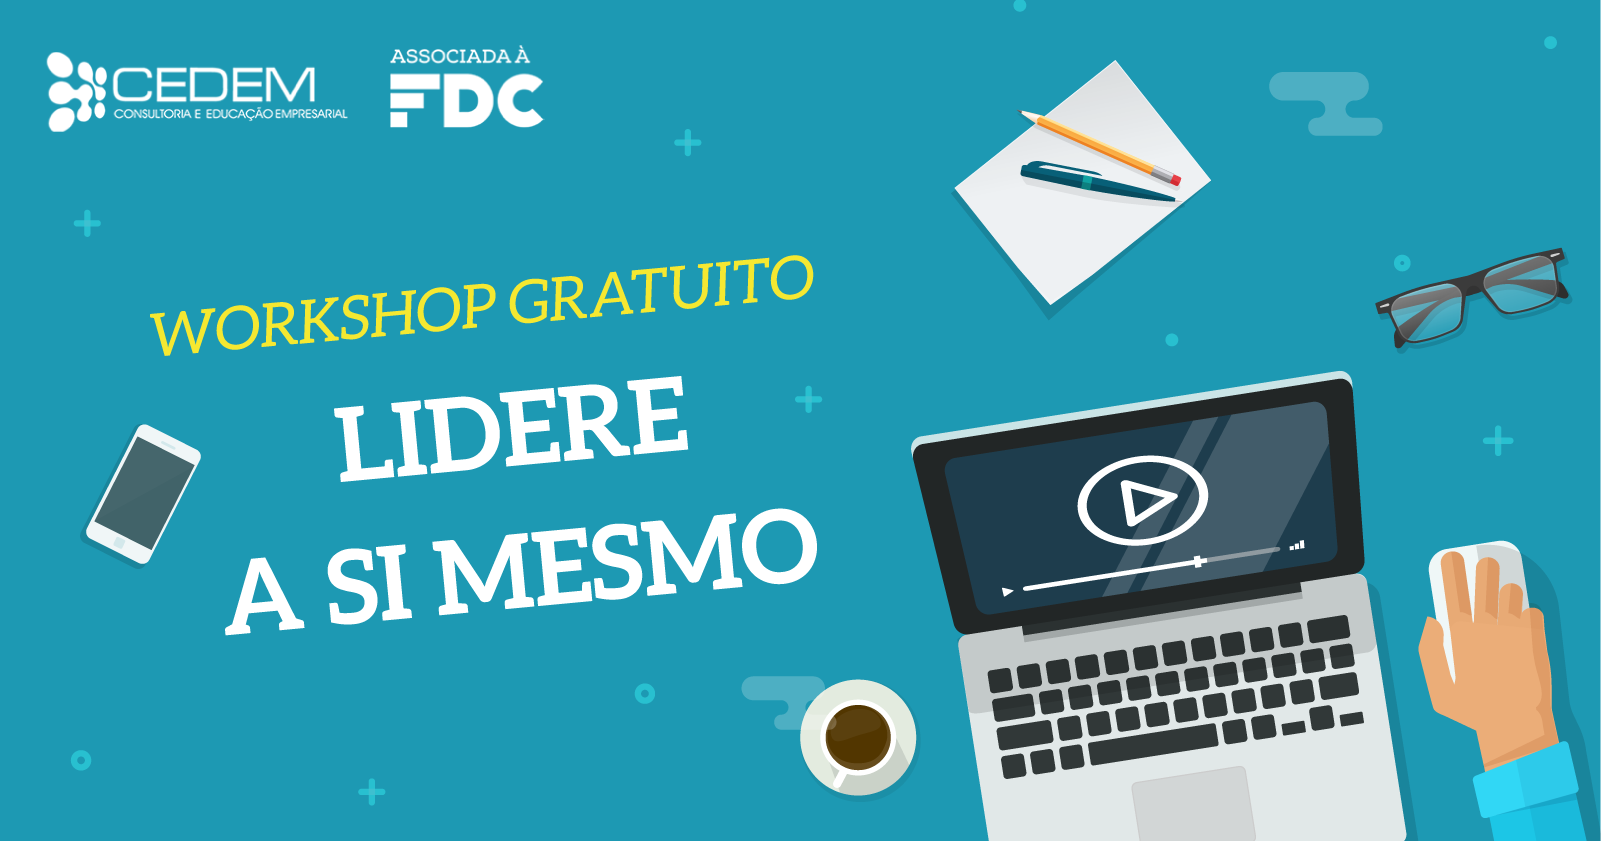 Workshop Lidere a Si Mesmo